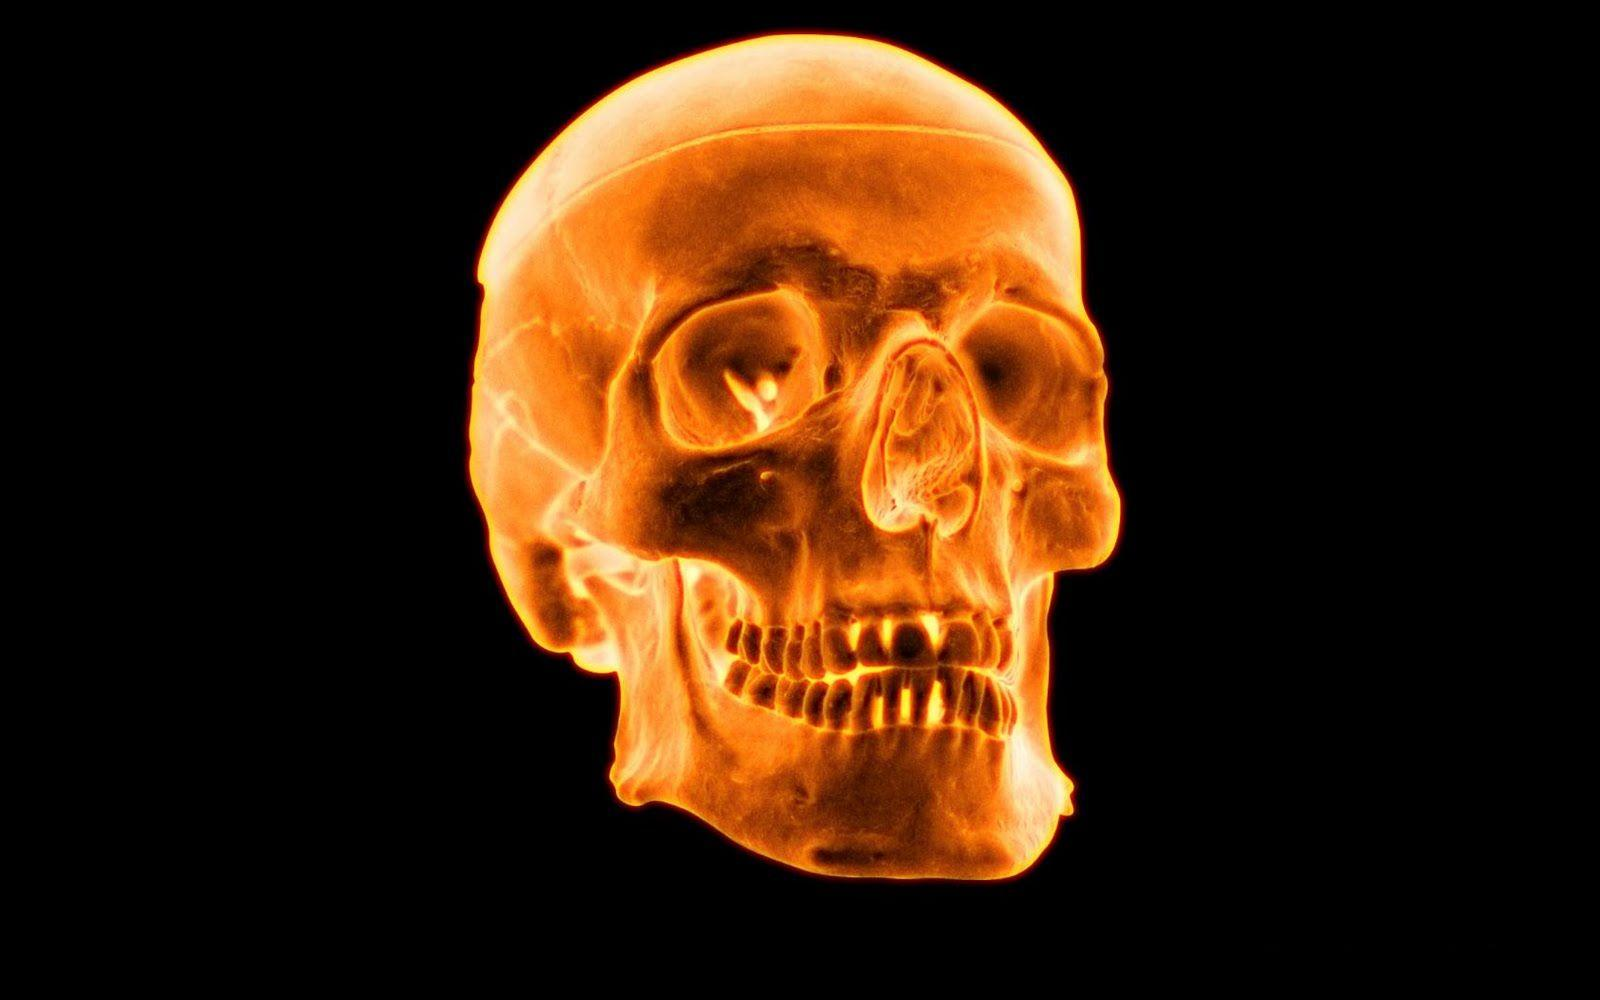 Cool 3d Flaming Skull Wallpapers